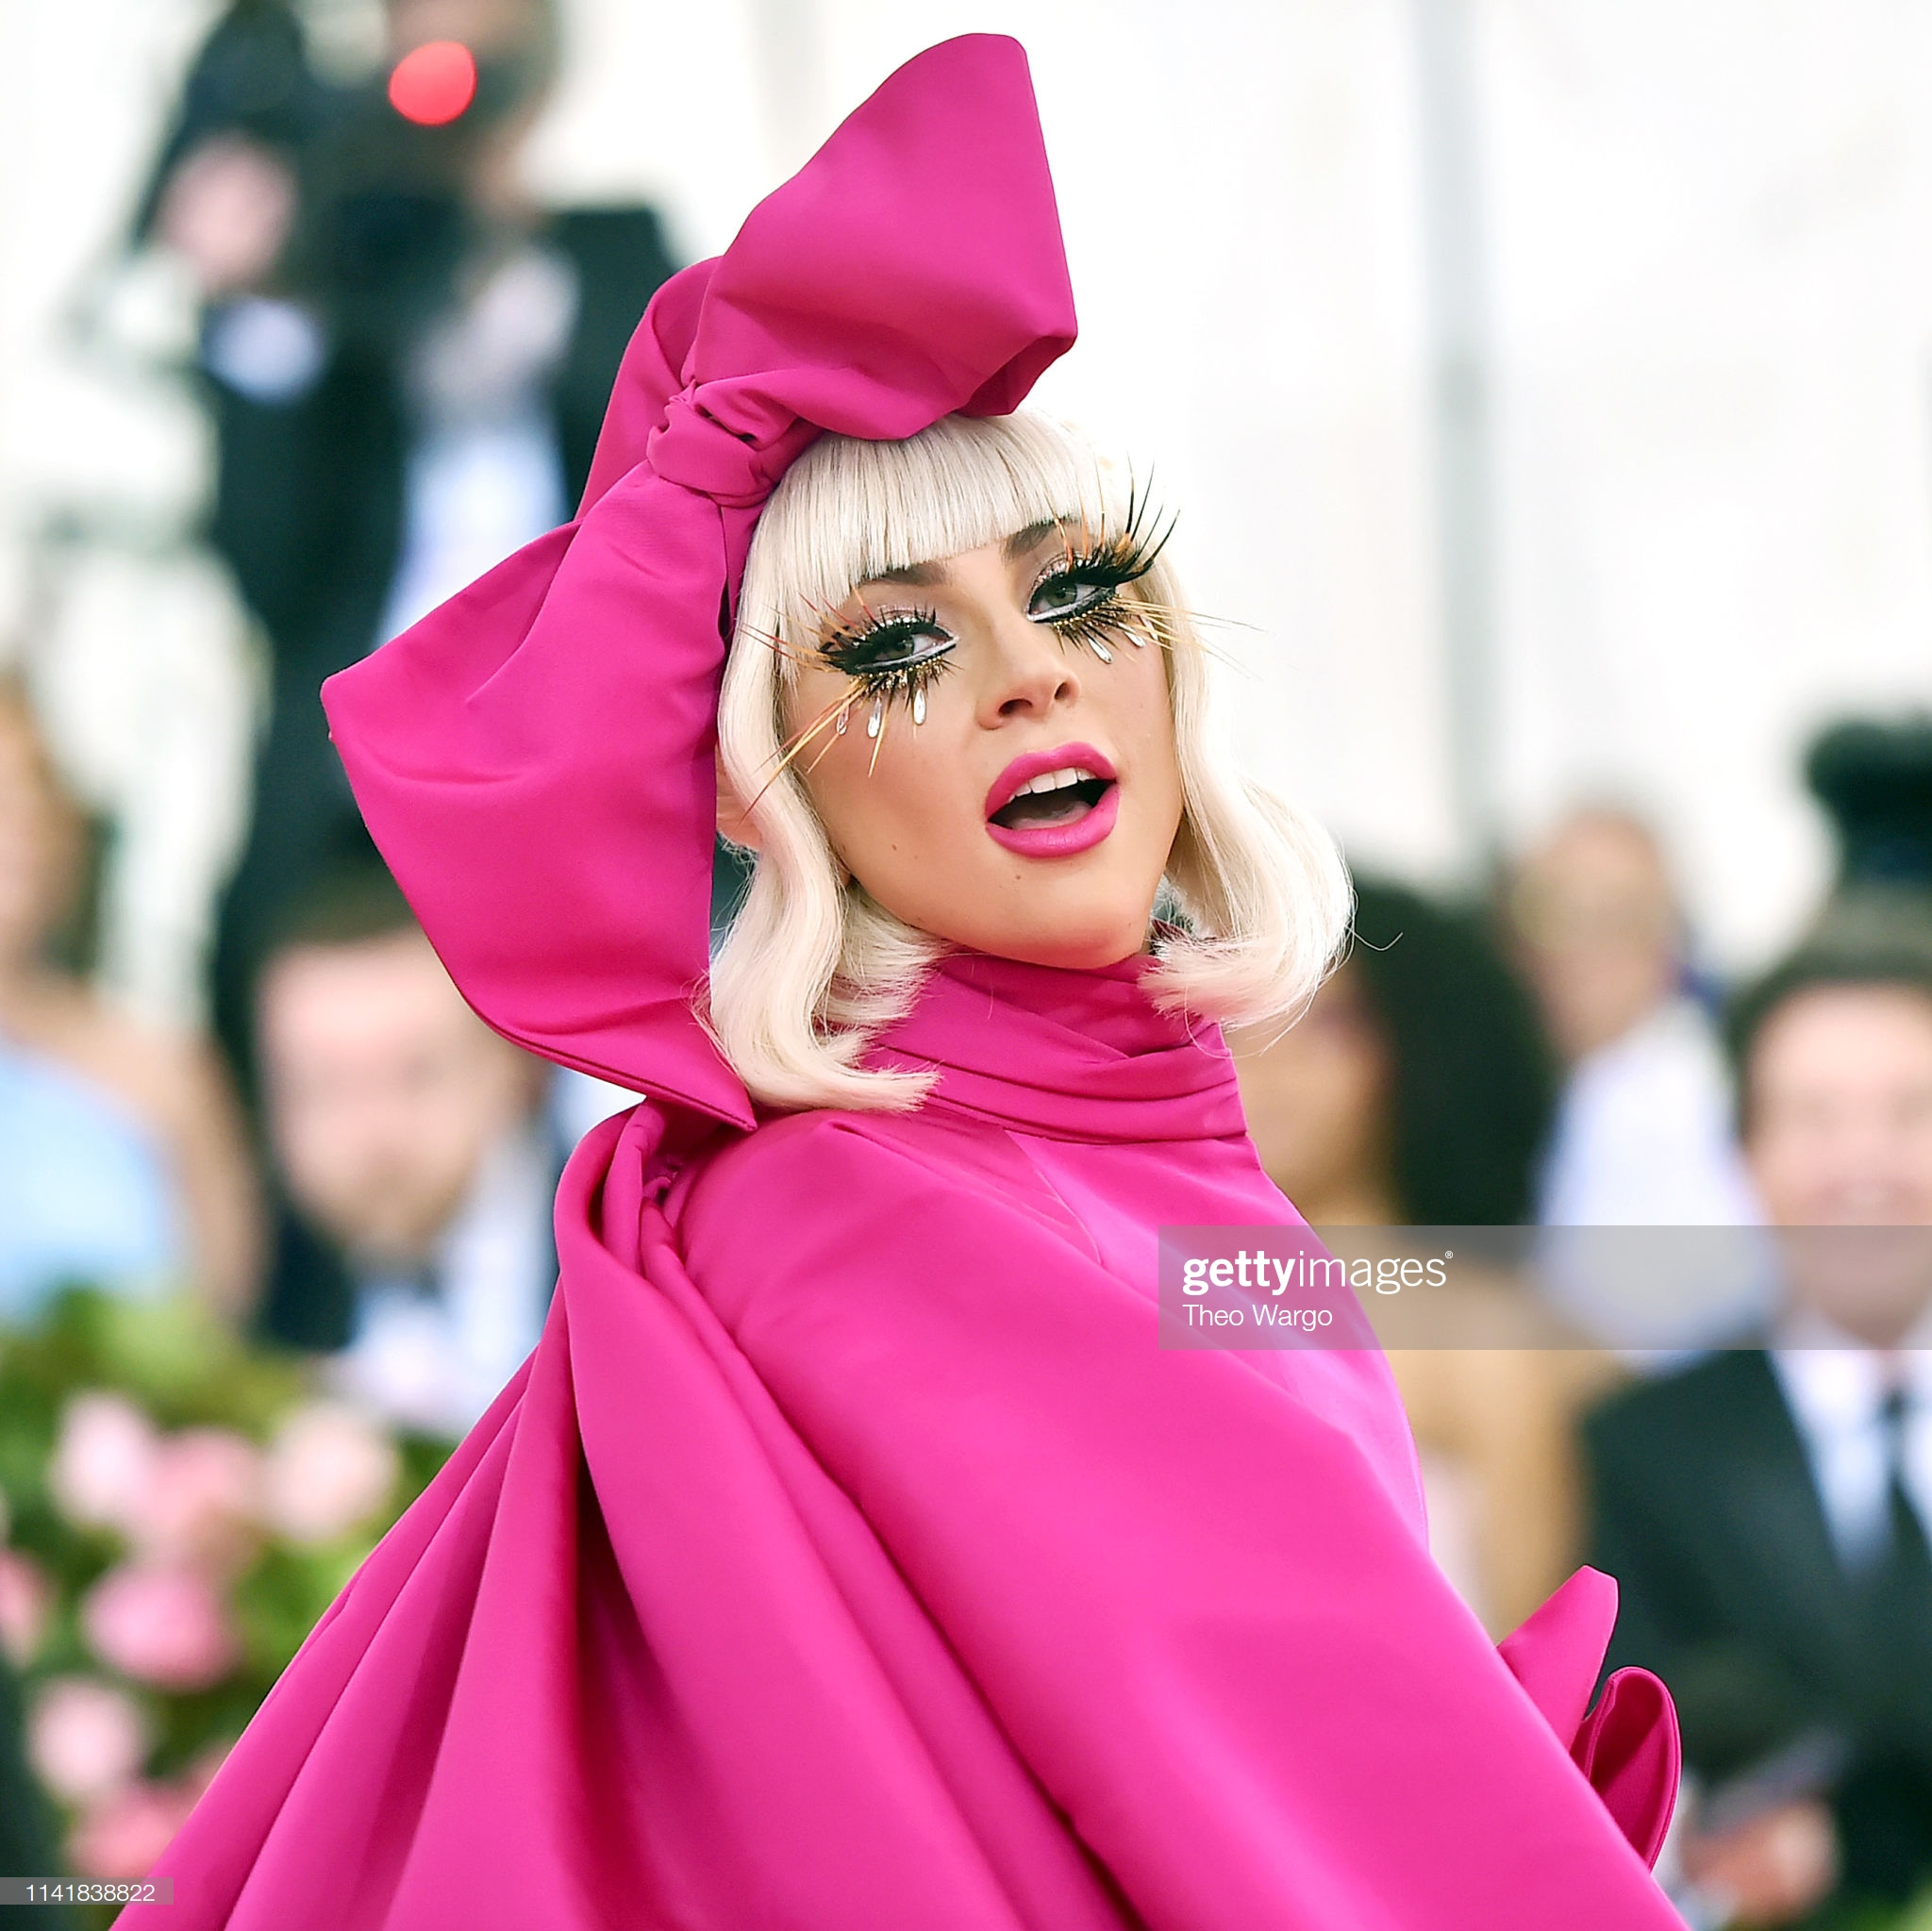 NEW YORK, NEW YORK - MAY 06: Lady Gaga attends The 2019 Met Gala Celebrating Camp: Notes on Fashionat Metropolitan Museum of Art on May 06, 2019 in New York City. (Photo by Theo Wargo/WireImage)